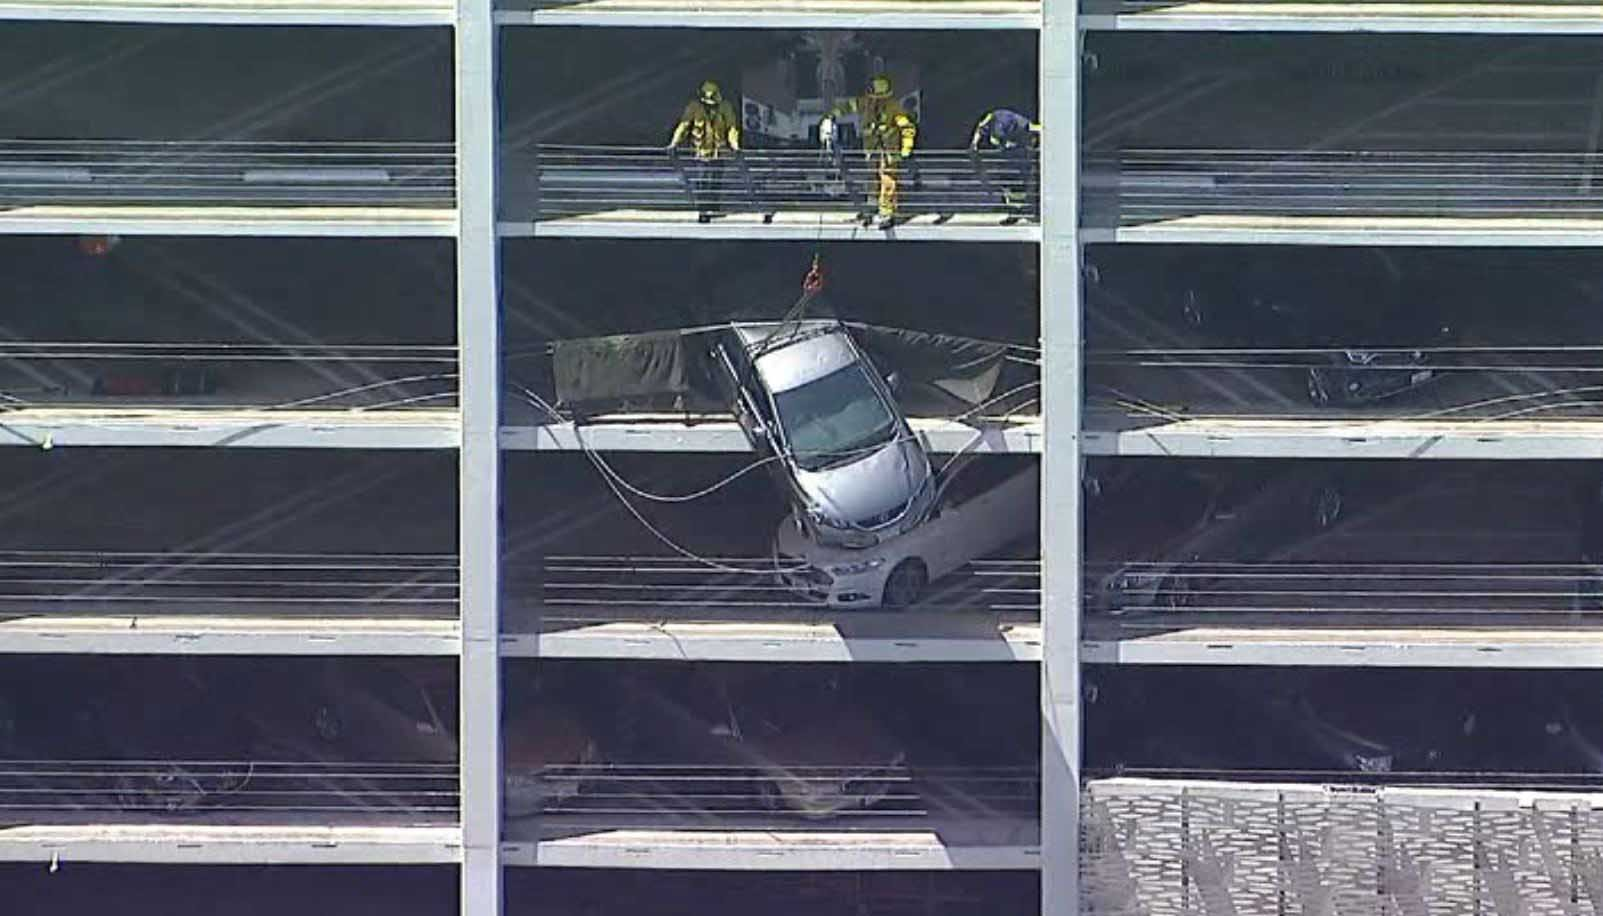 Crews removed a car dangling from the fourth floor of a California parking garage Monday. (Source: KABC/CNN)